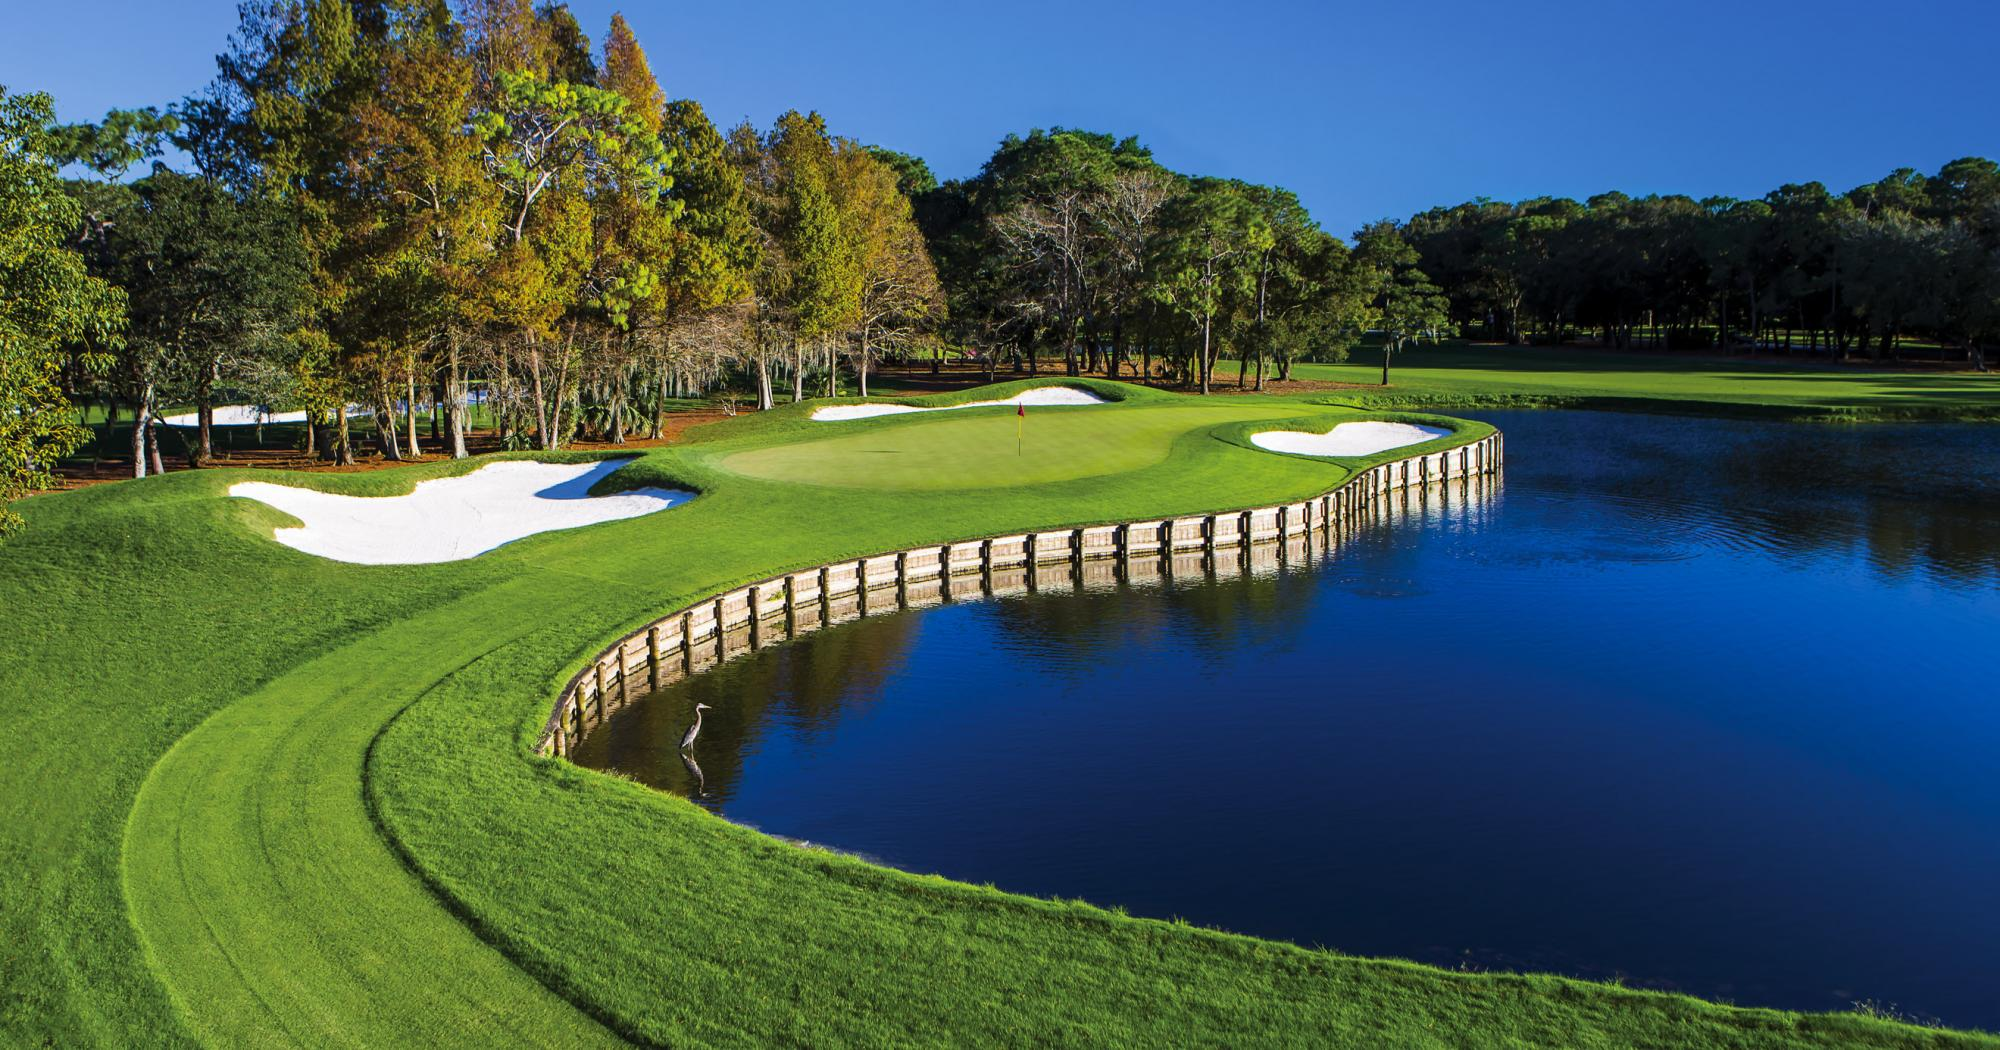 The Innisbrook Golf's picturesque golf course in stunning Florida.